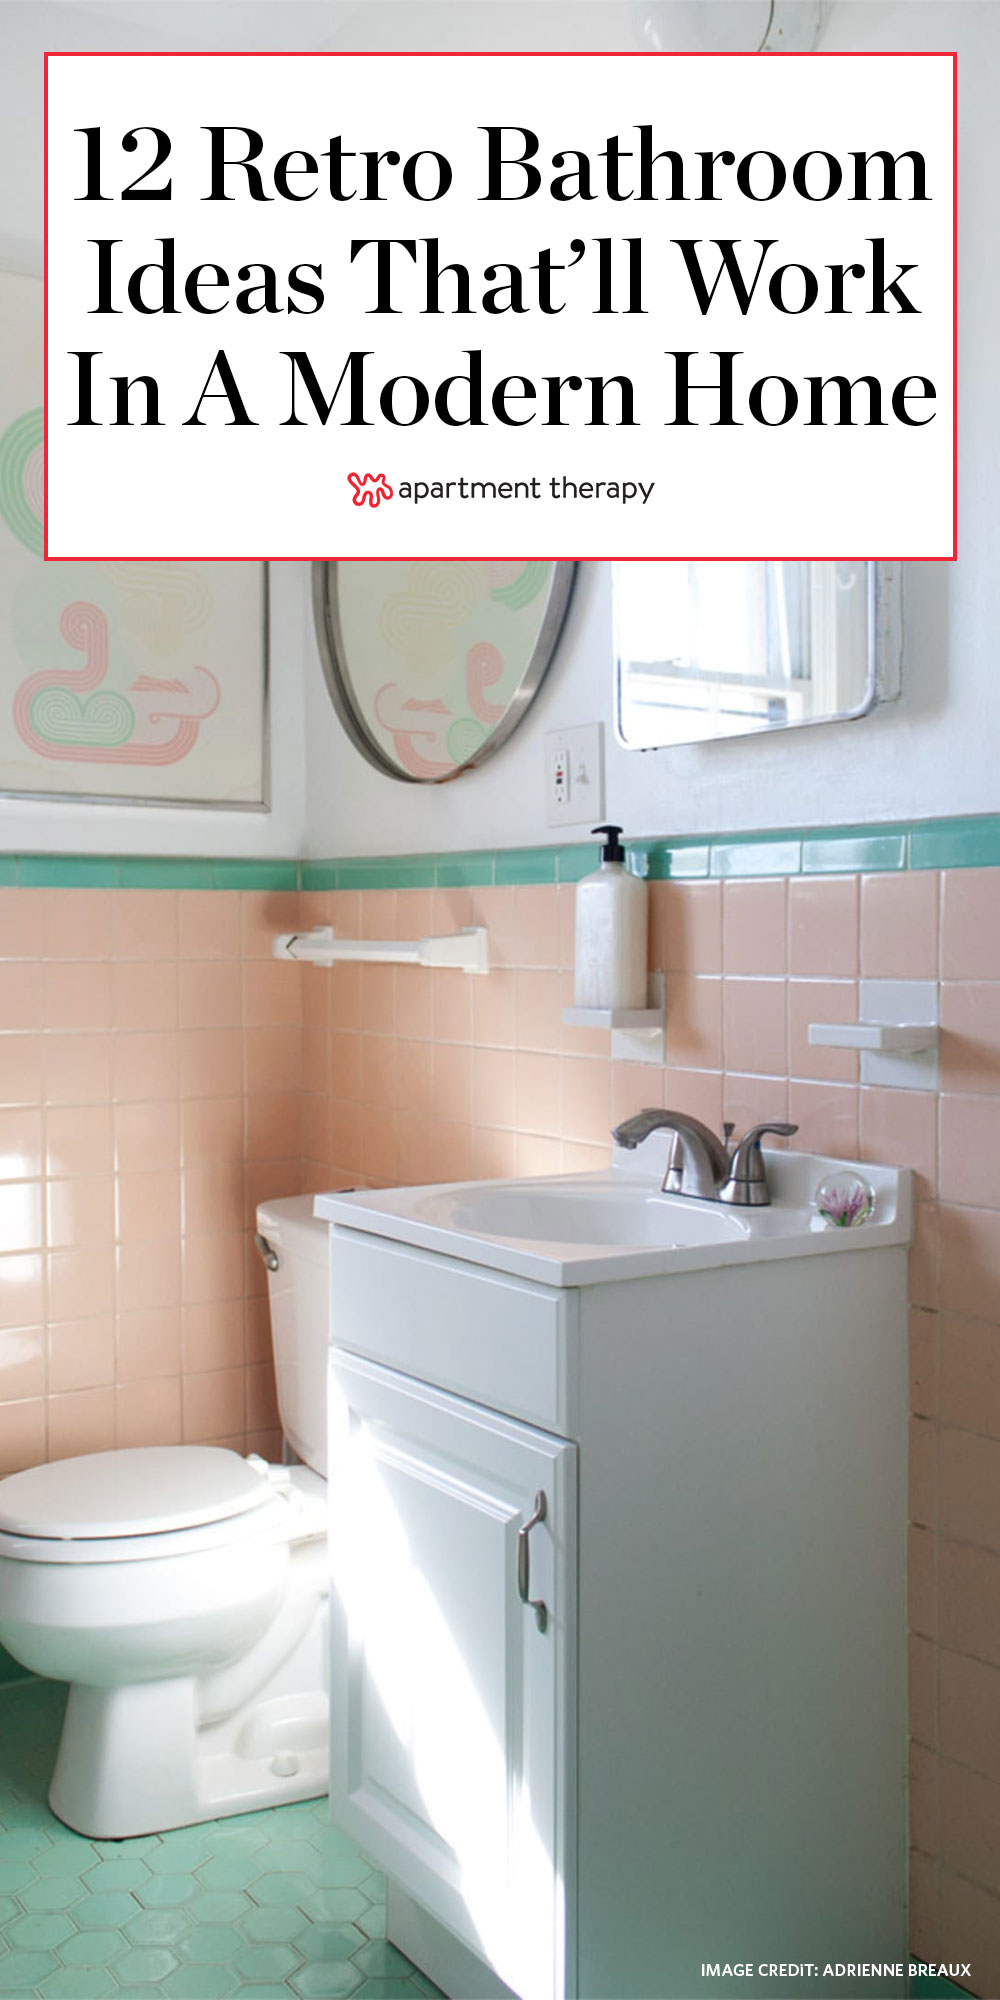 12 Retro Bathroom Ideas Cool Old Style Photos Apartment Therapy